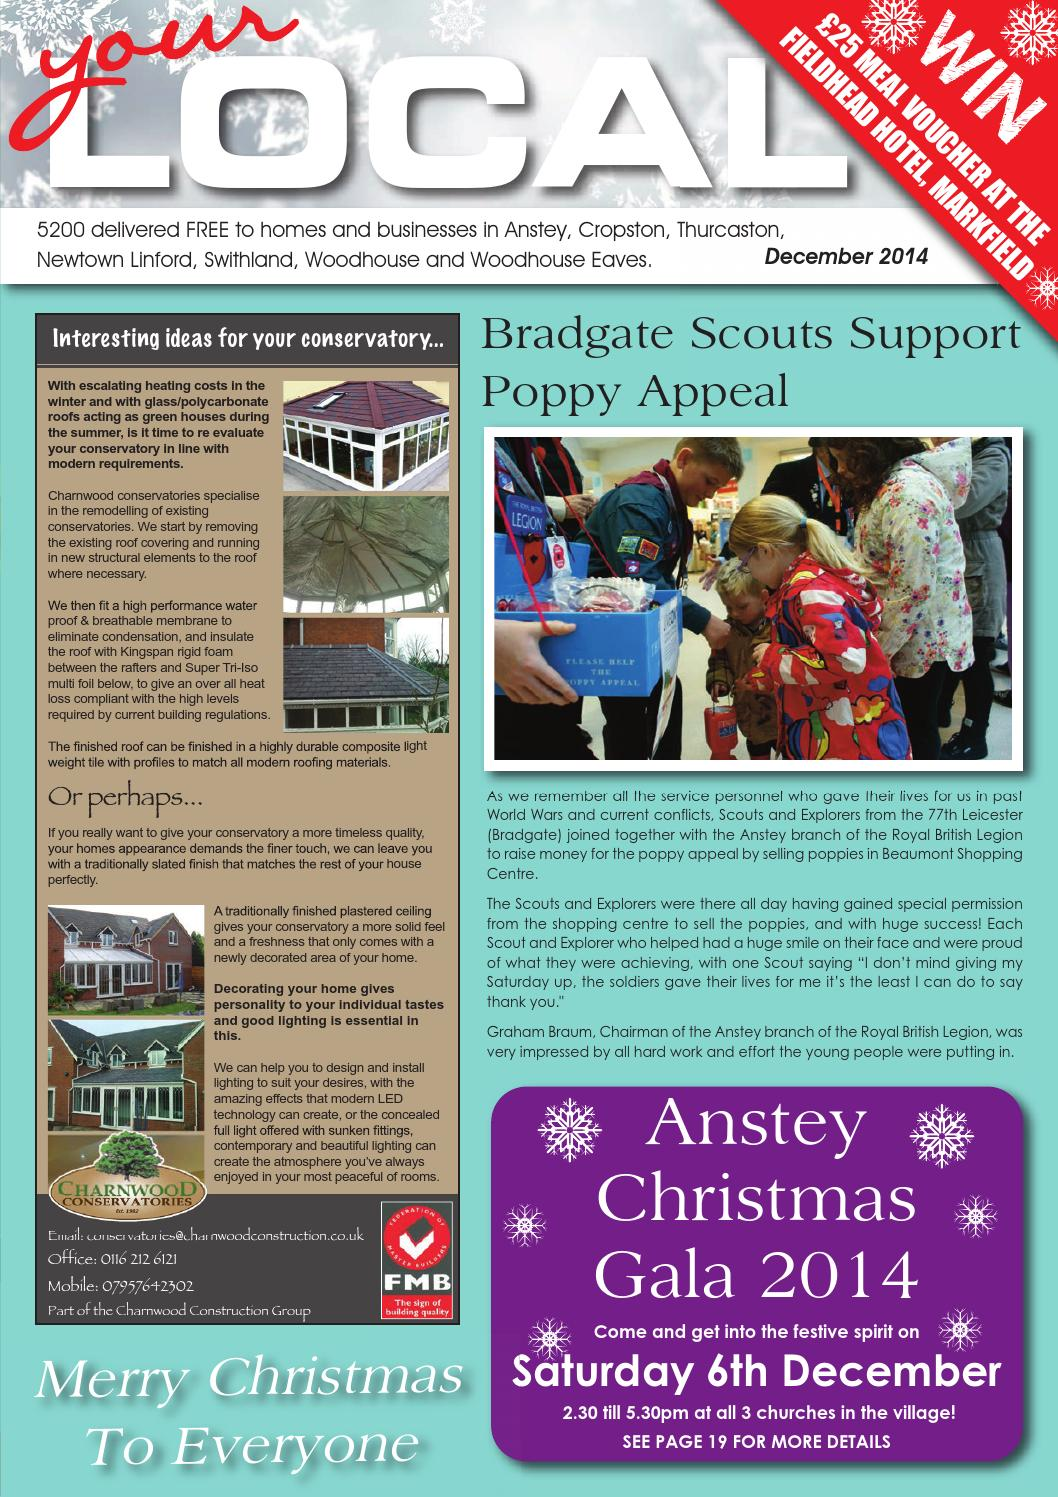 December 2014 - Your Local Anstey, Thurcaston, Cropston, Swithland ...